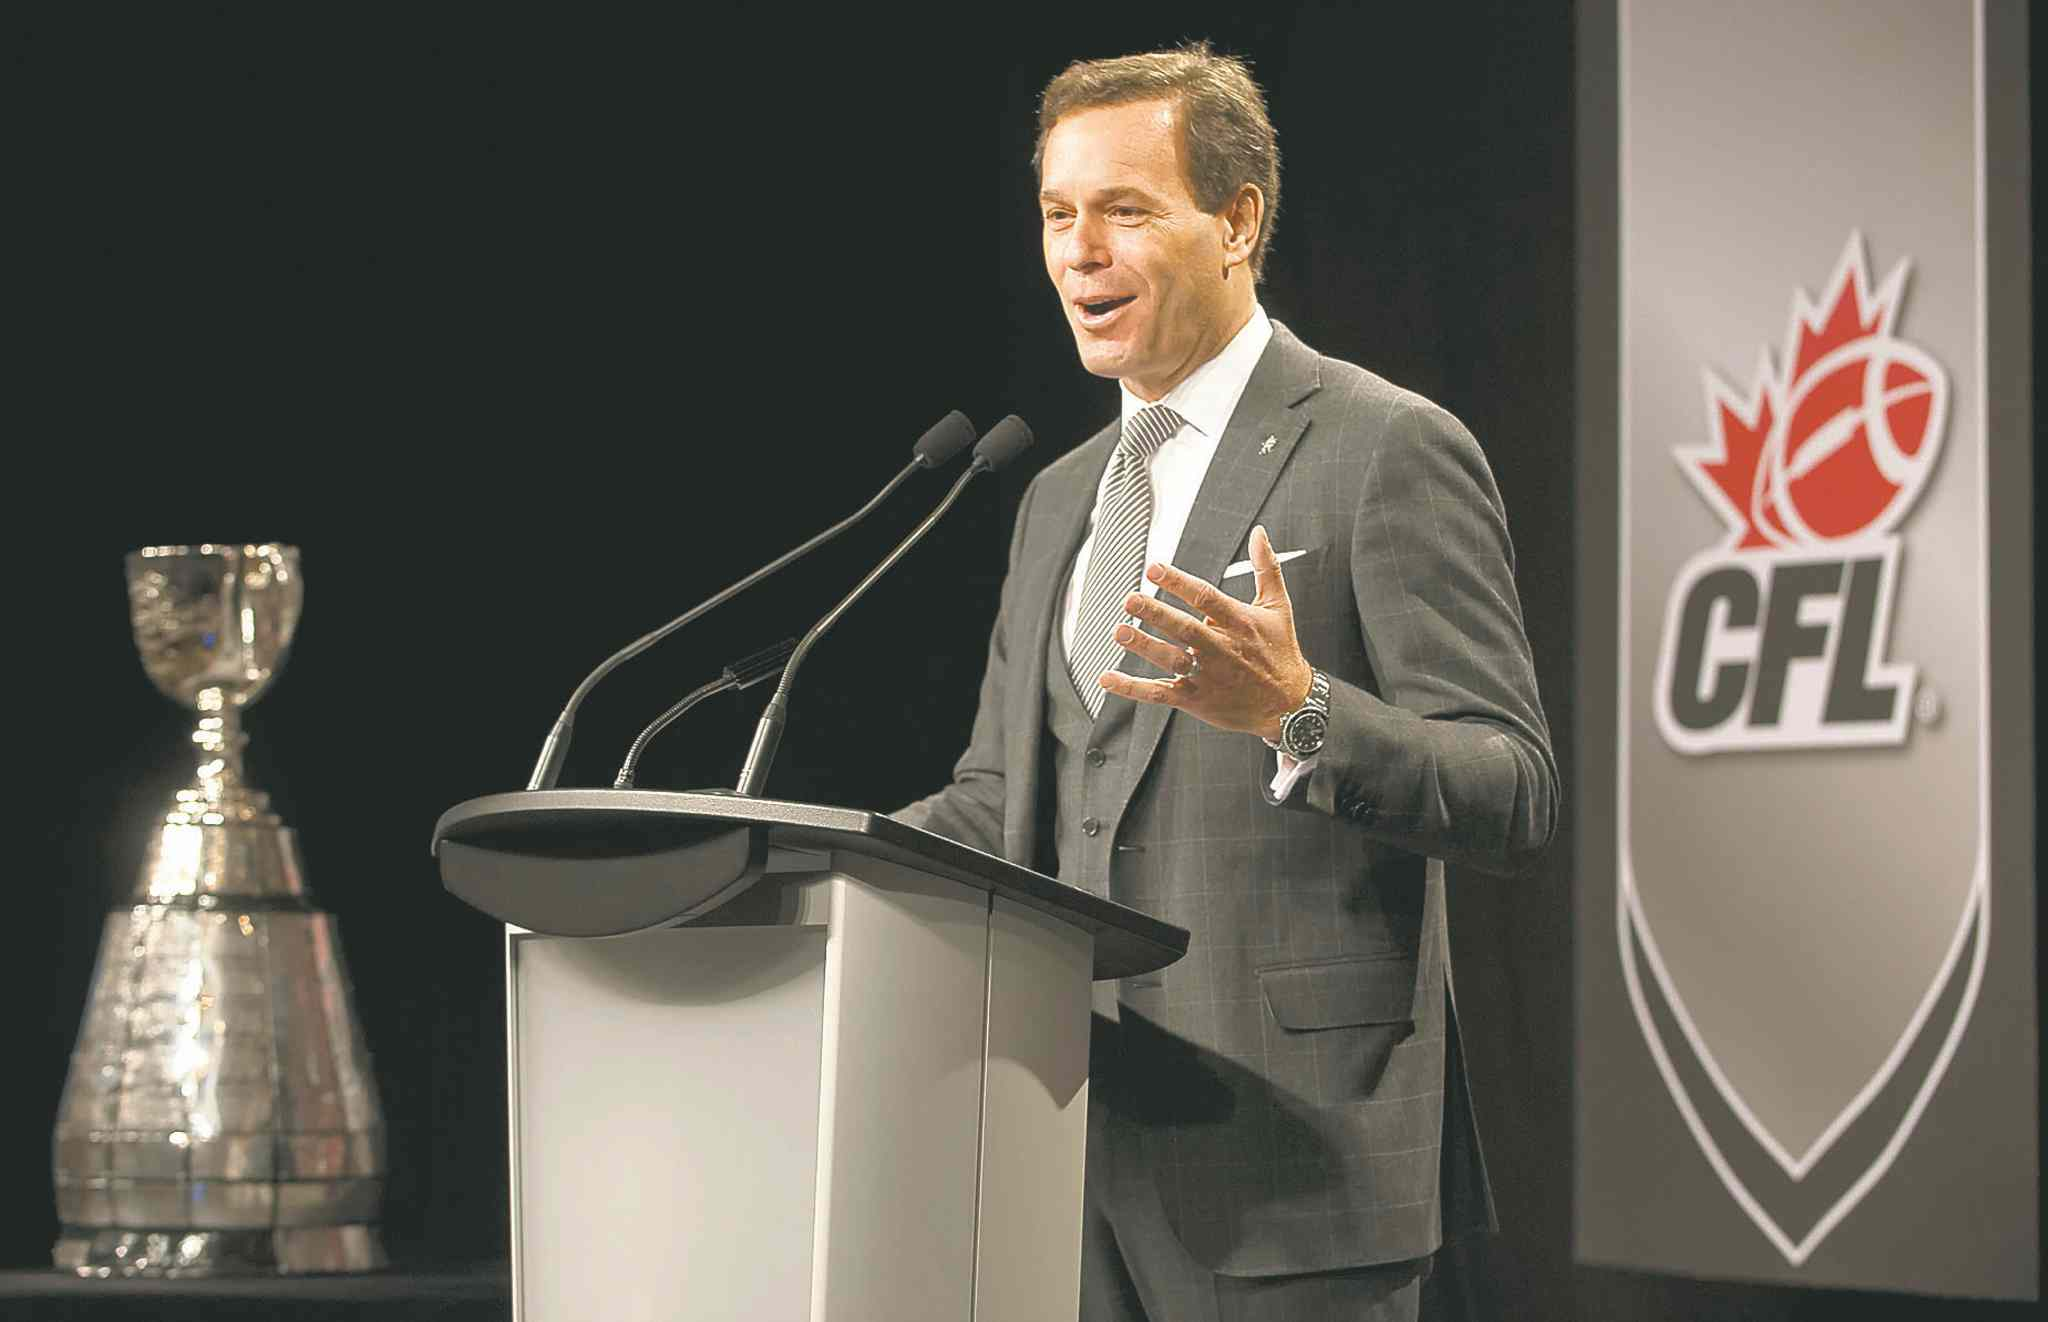 CFL Commissioner Mark Cohon is expected to announce Winnipeg will host the 2015 Grey Cup.